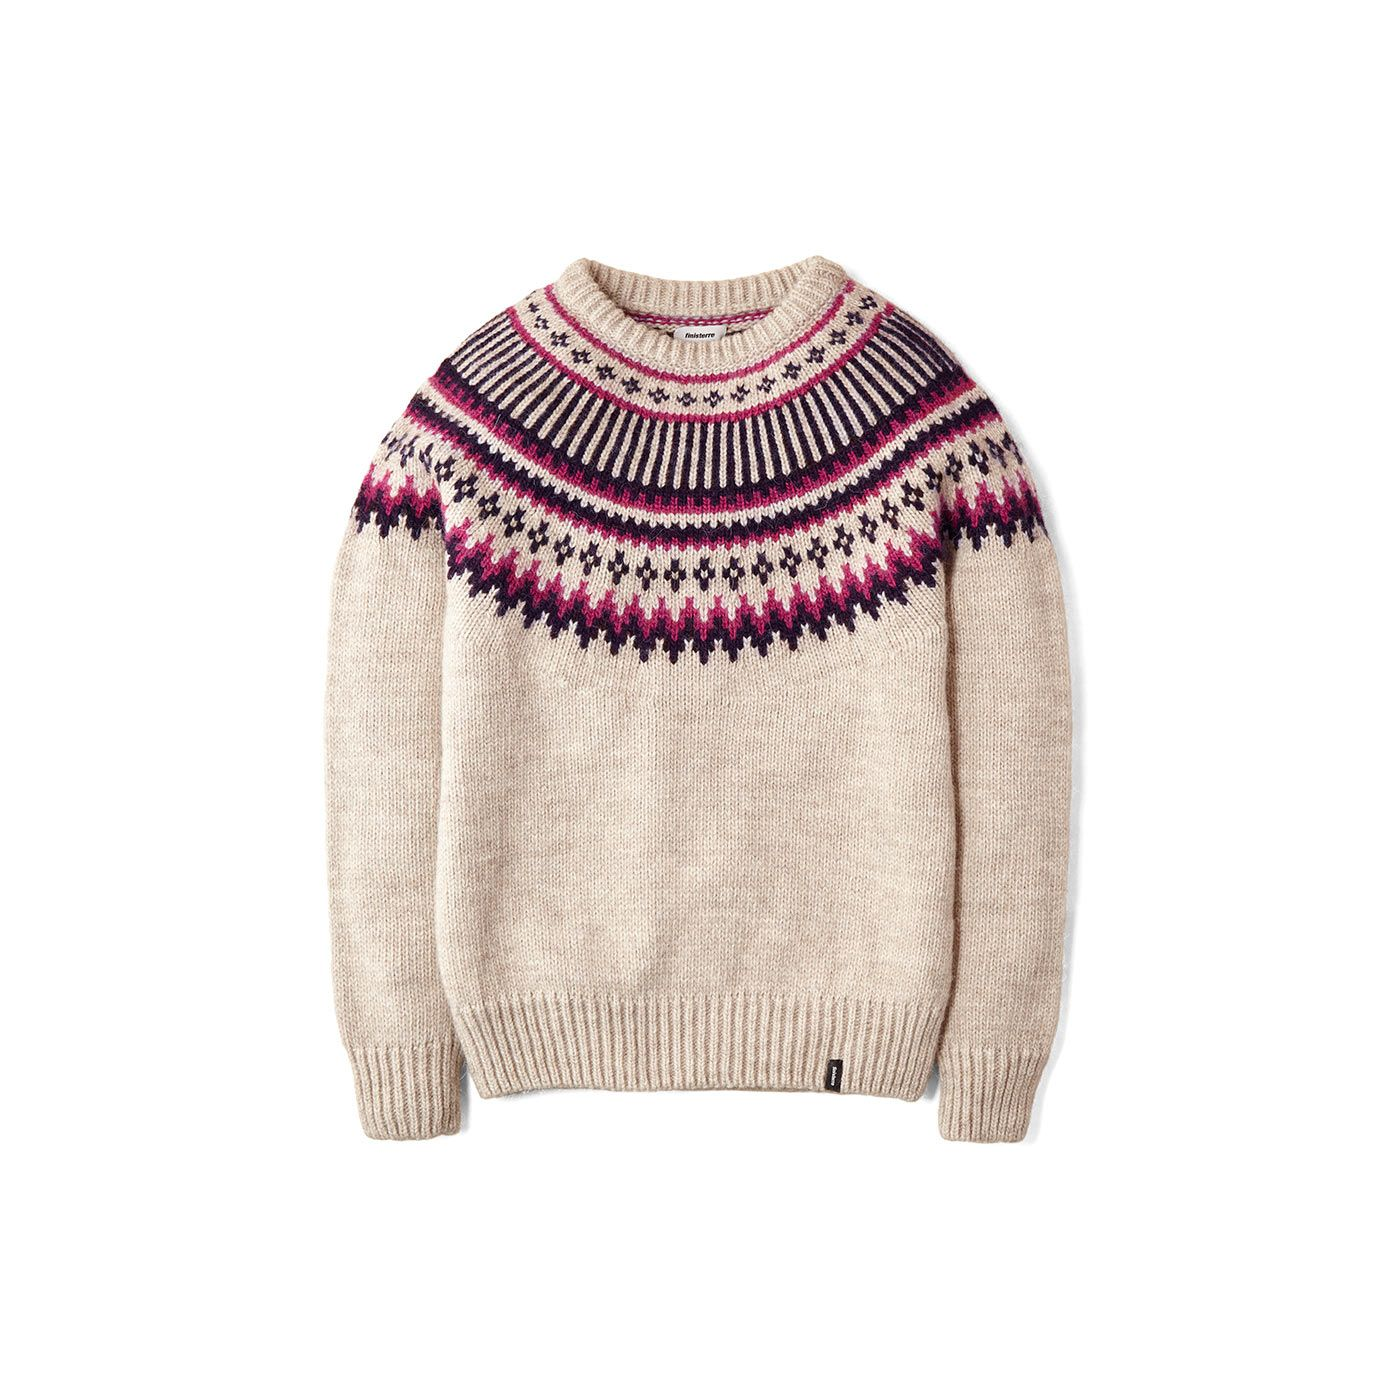 KNITWEAR - Jumpers Water Clothing Cheap Low Cost Sale Fashion Style With Credit Card Free Shipping Pre Order Cheap Price Footlocker Pictures Cheap Online xJMATsx7Y